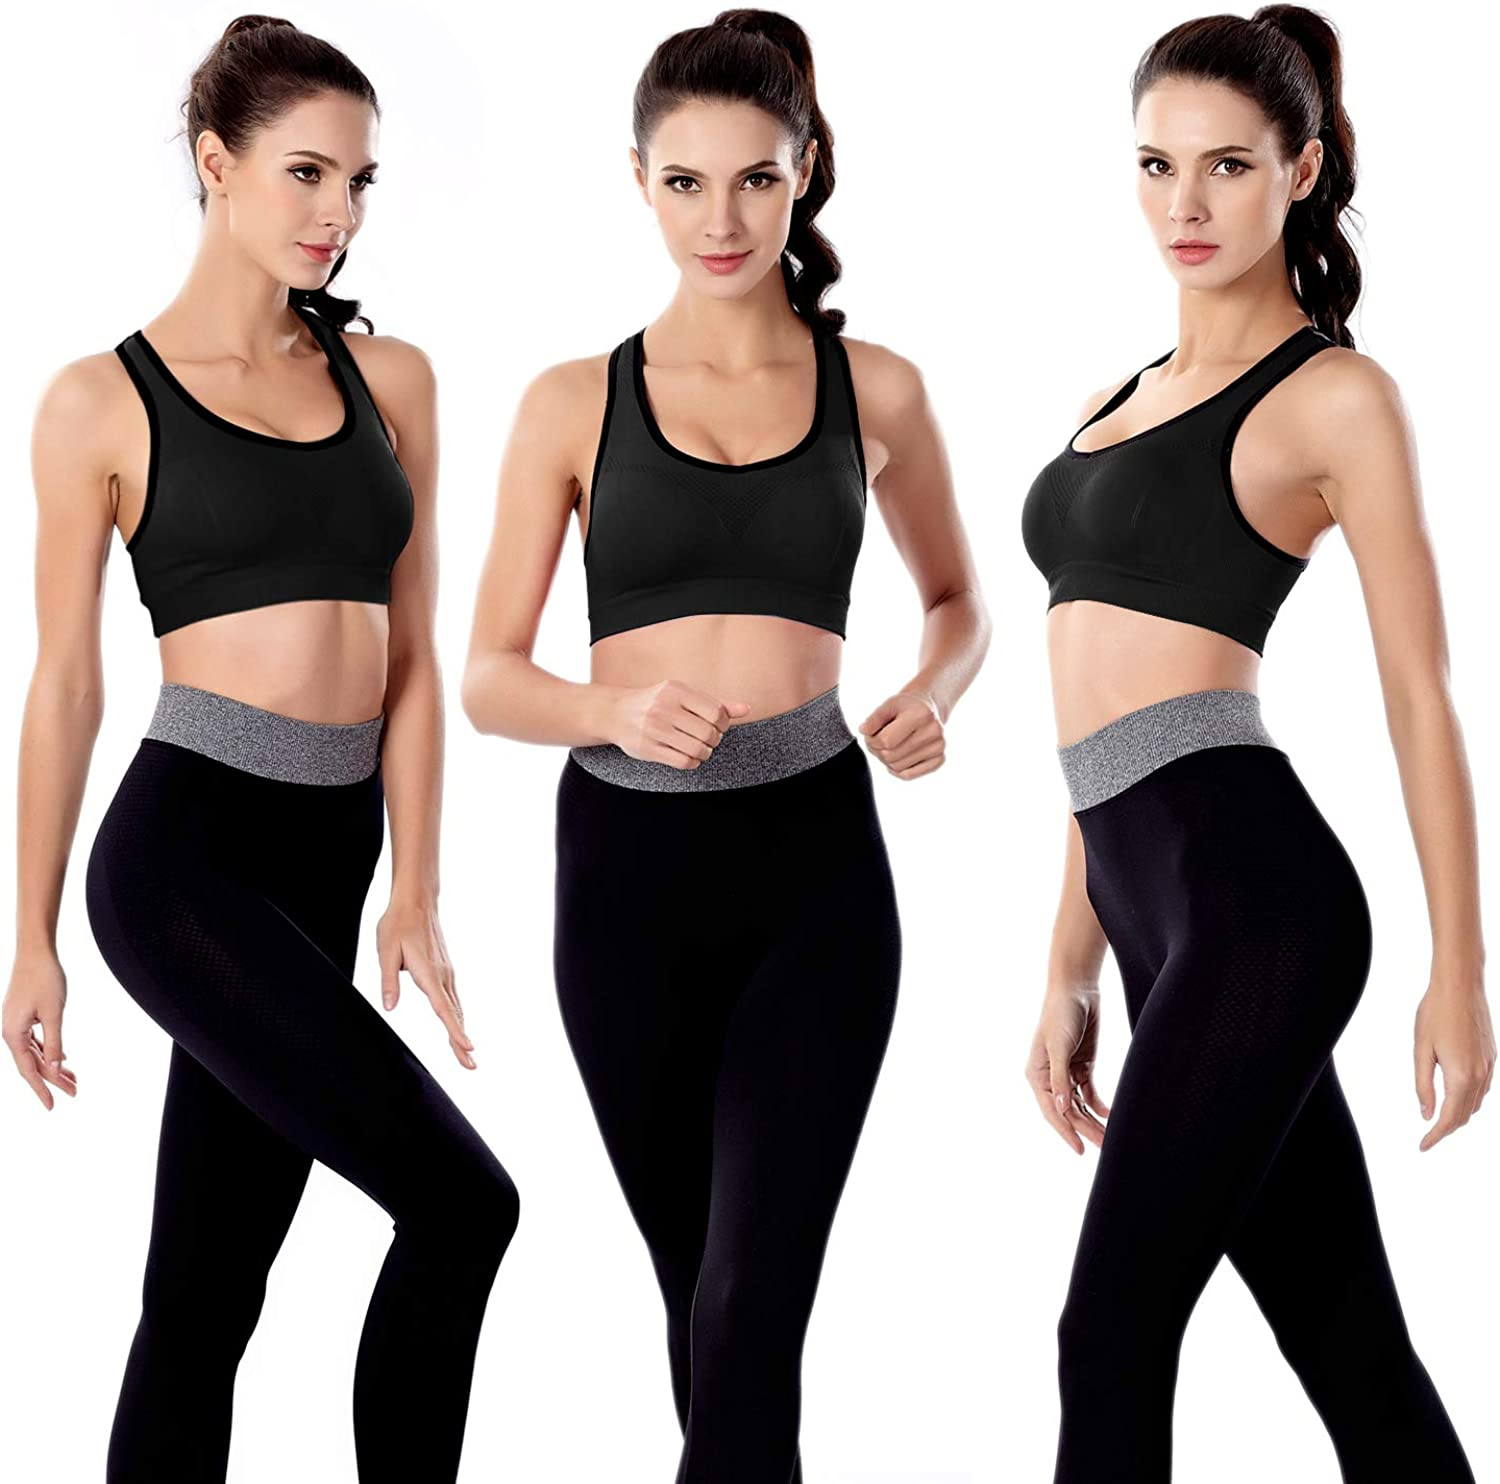 GXXGE Padded Racerback Sports Bras for Women High Impact Workout Yoga Gym Activewear Fitness Bra